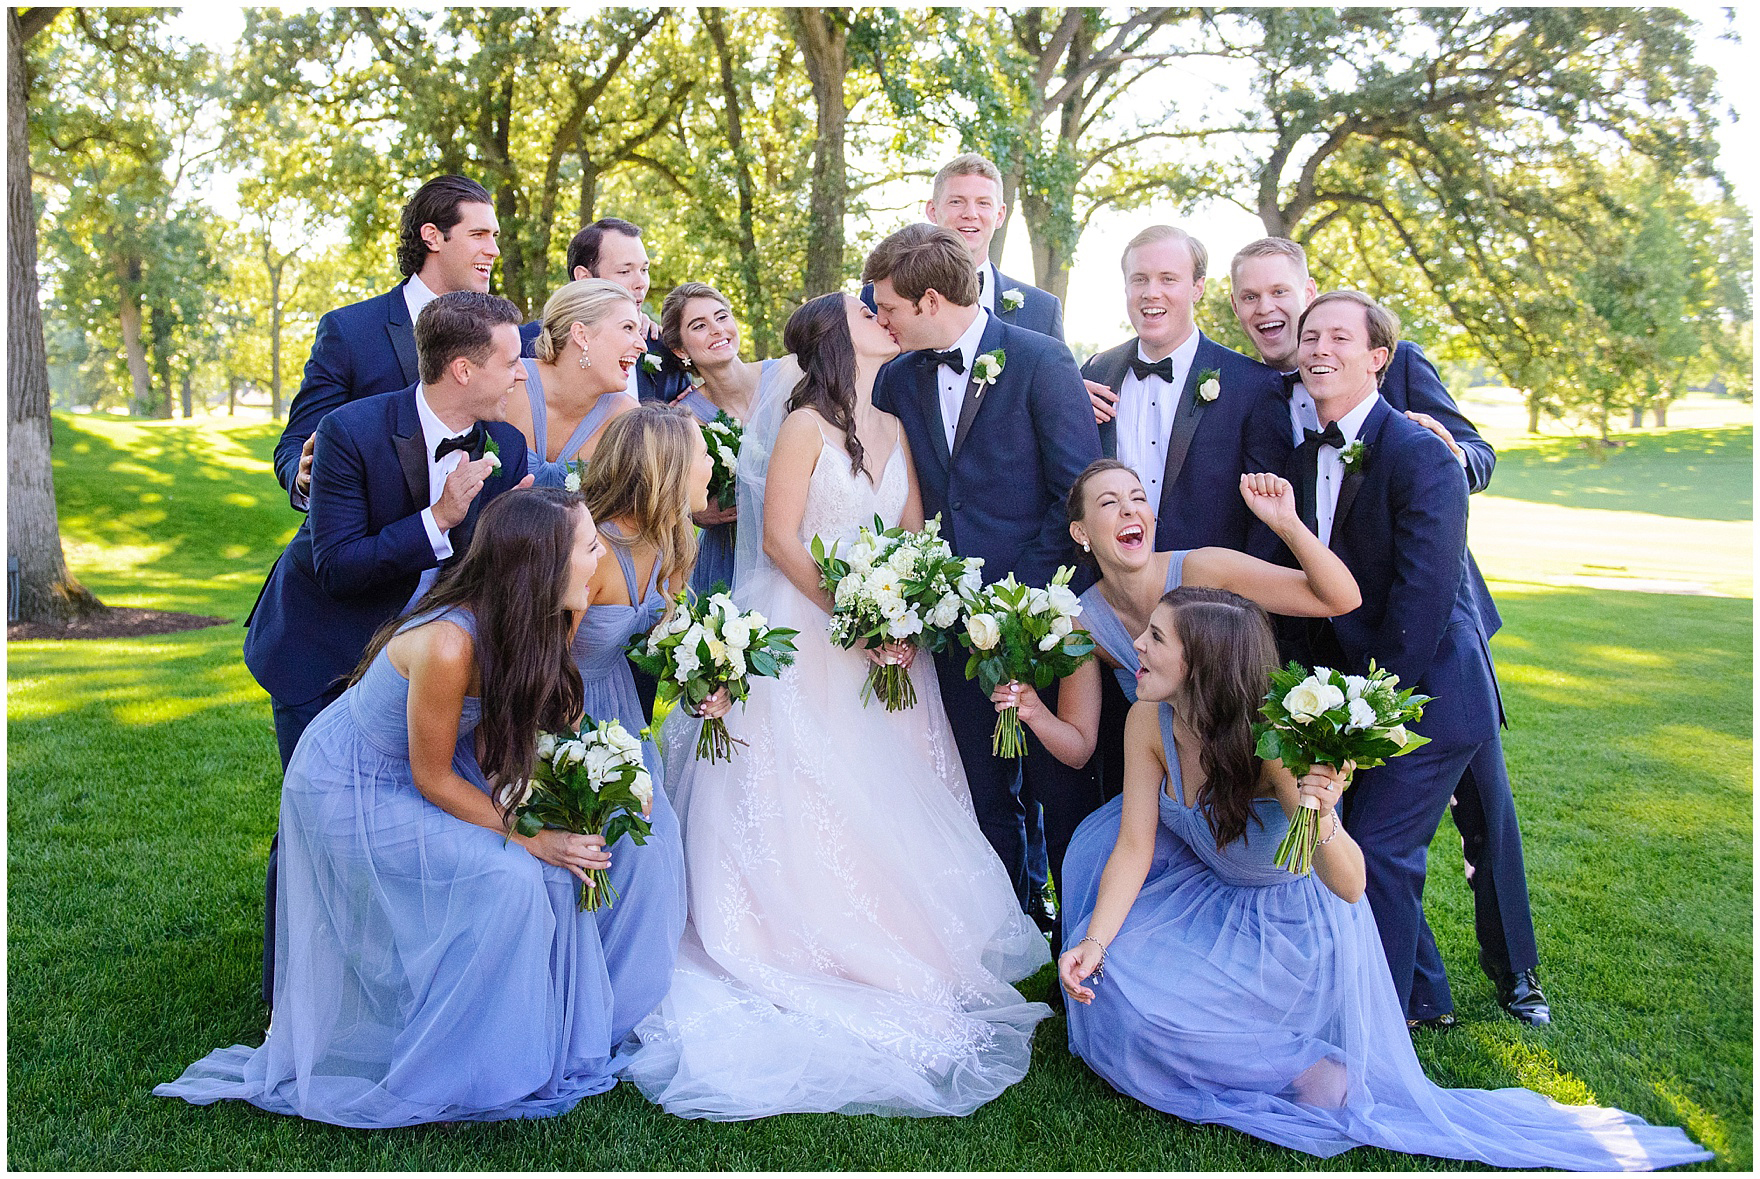 The bridal party poses during a Butterfield Country Club wedding.